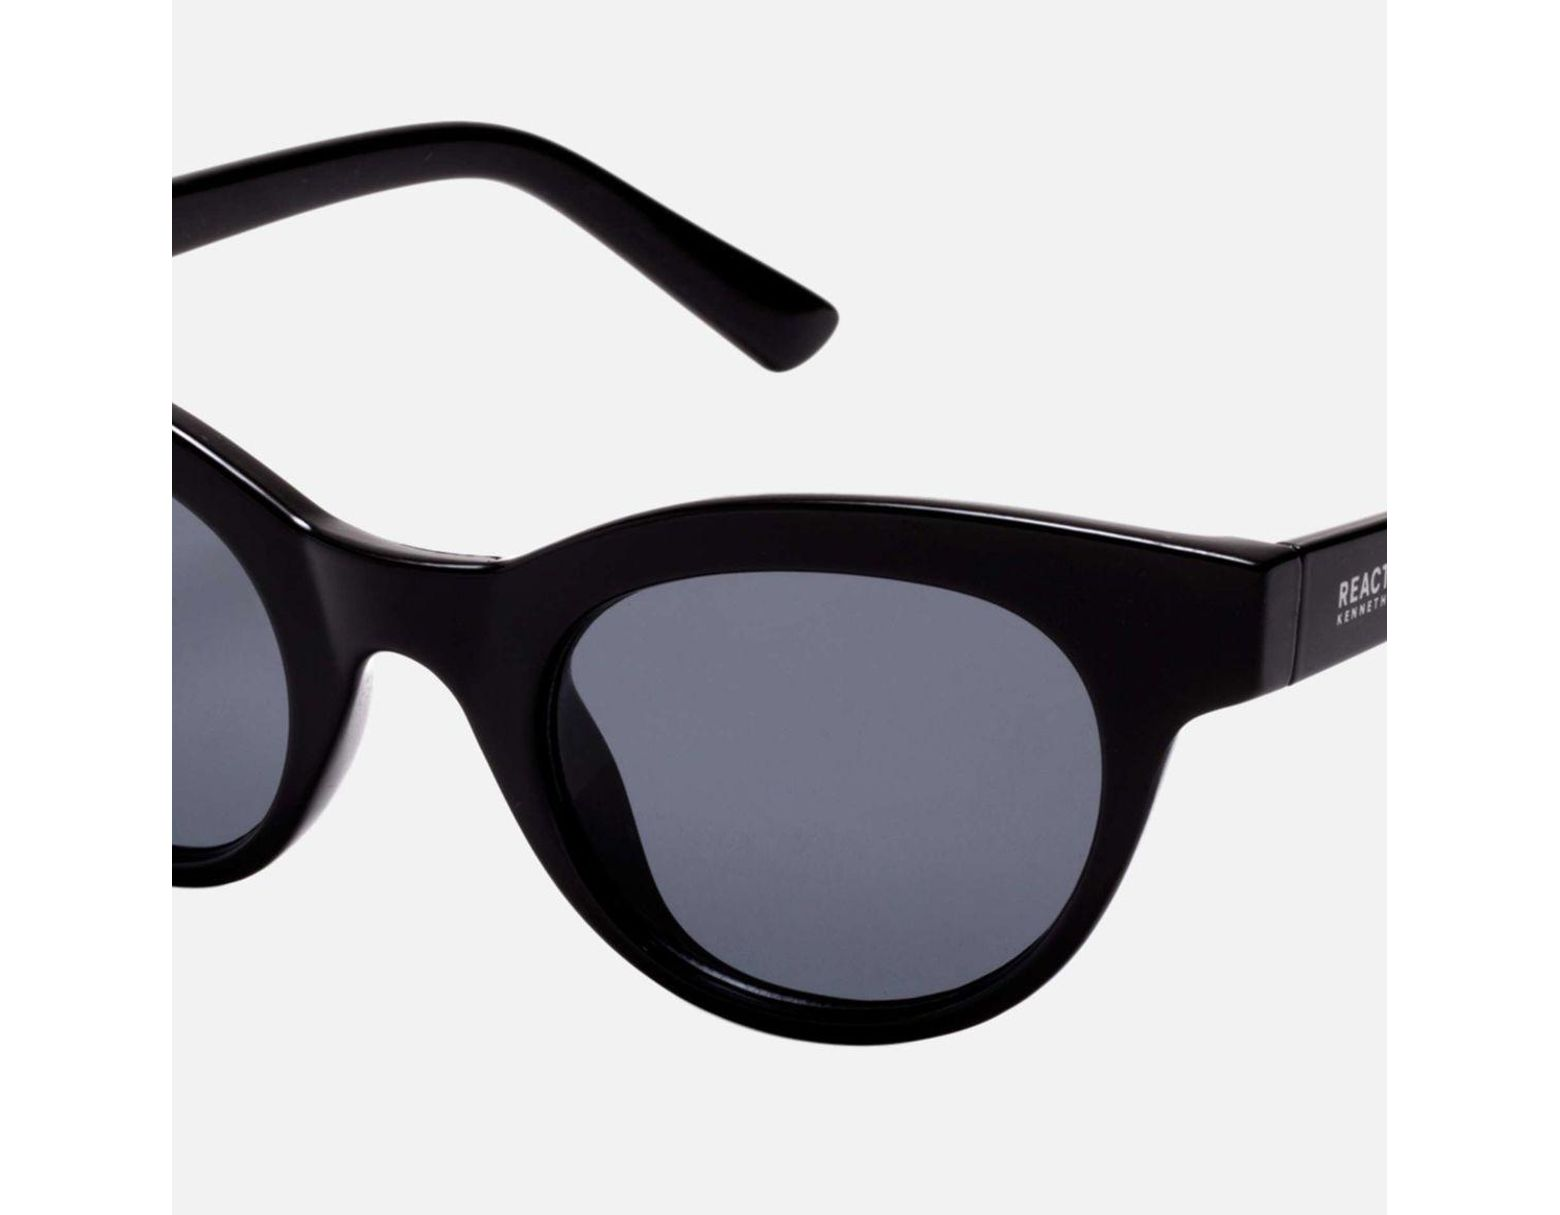 c7bec78b3a97 Lyst - Kenneth Cole Women's Small Cat Eye Sunglasses in Black